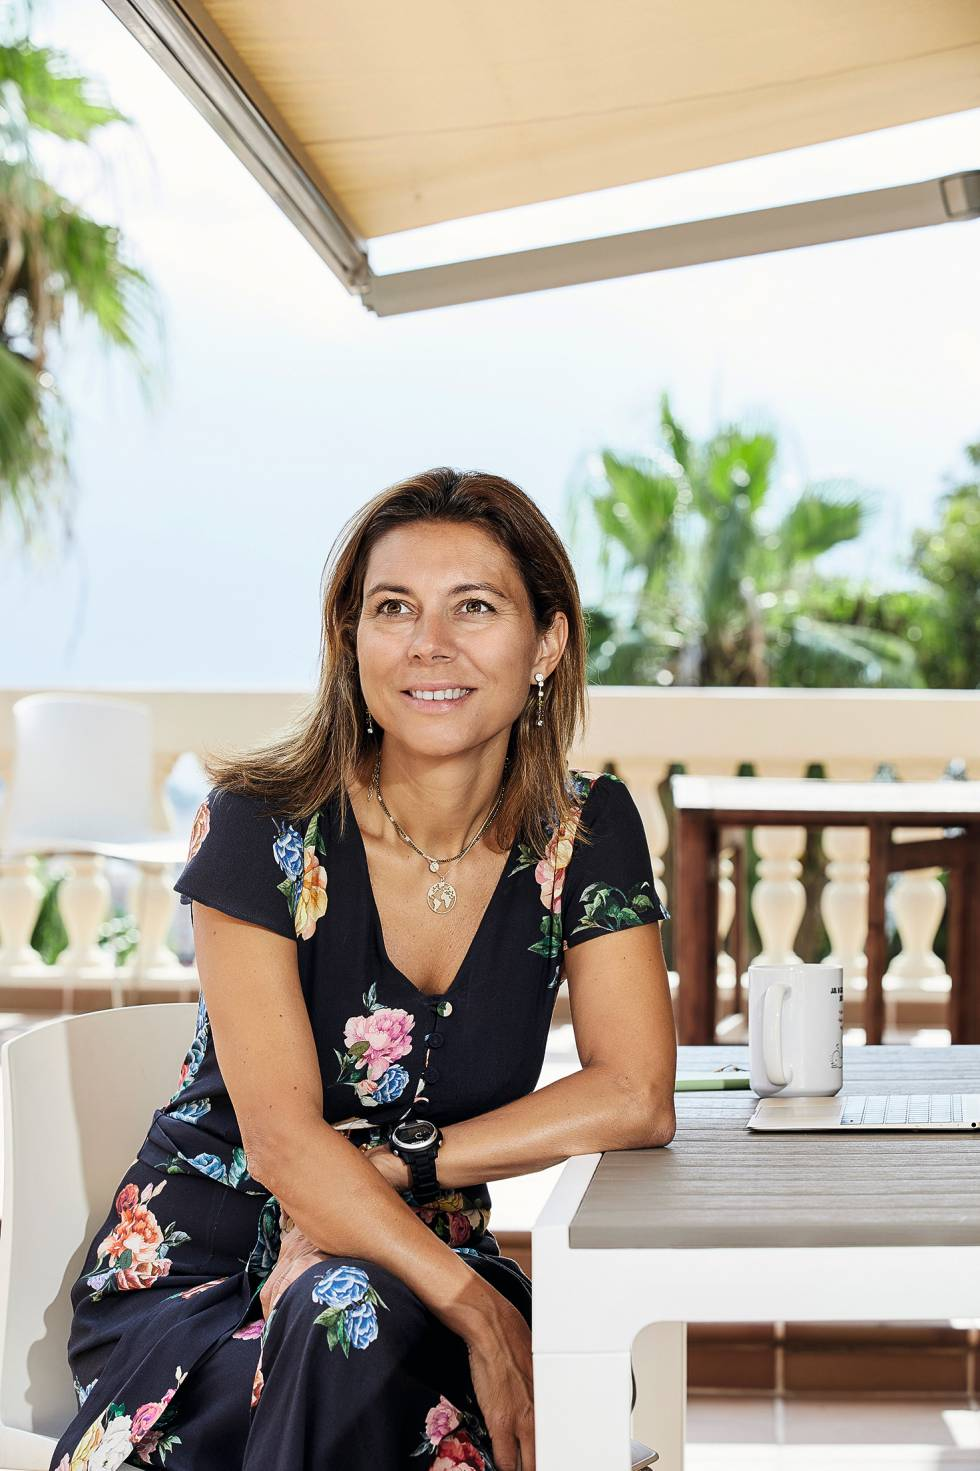 Ana Maiques is co-founder and CEO of Neuroelectrics